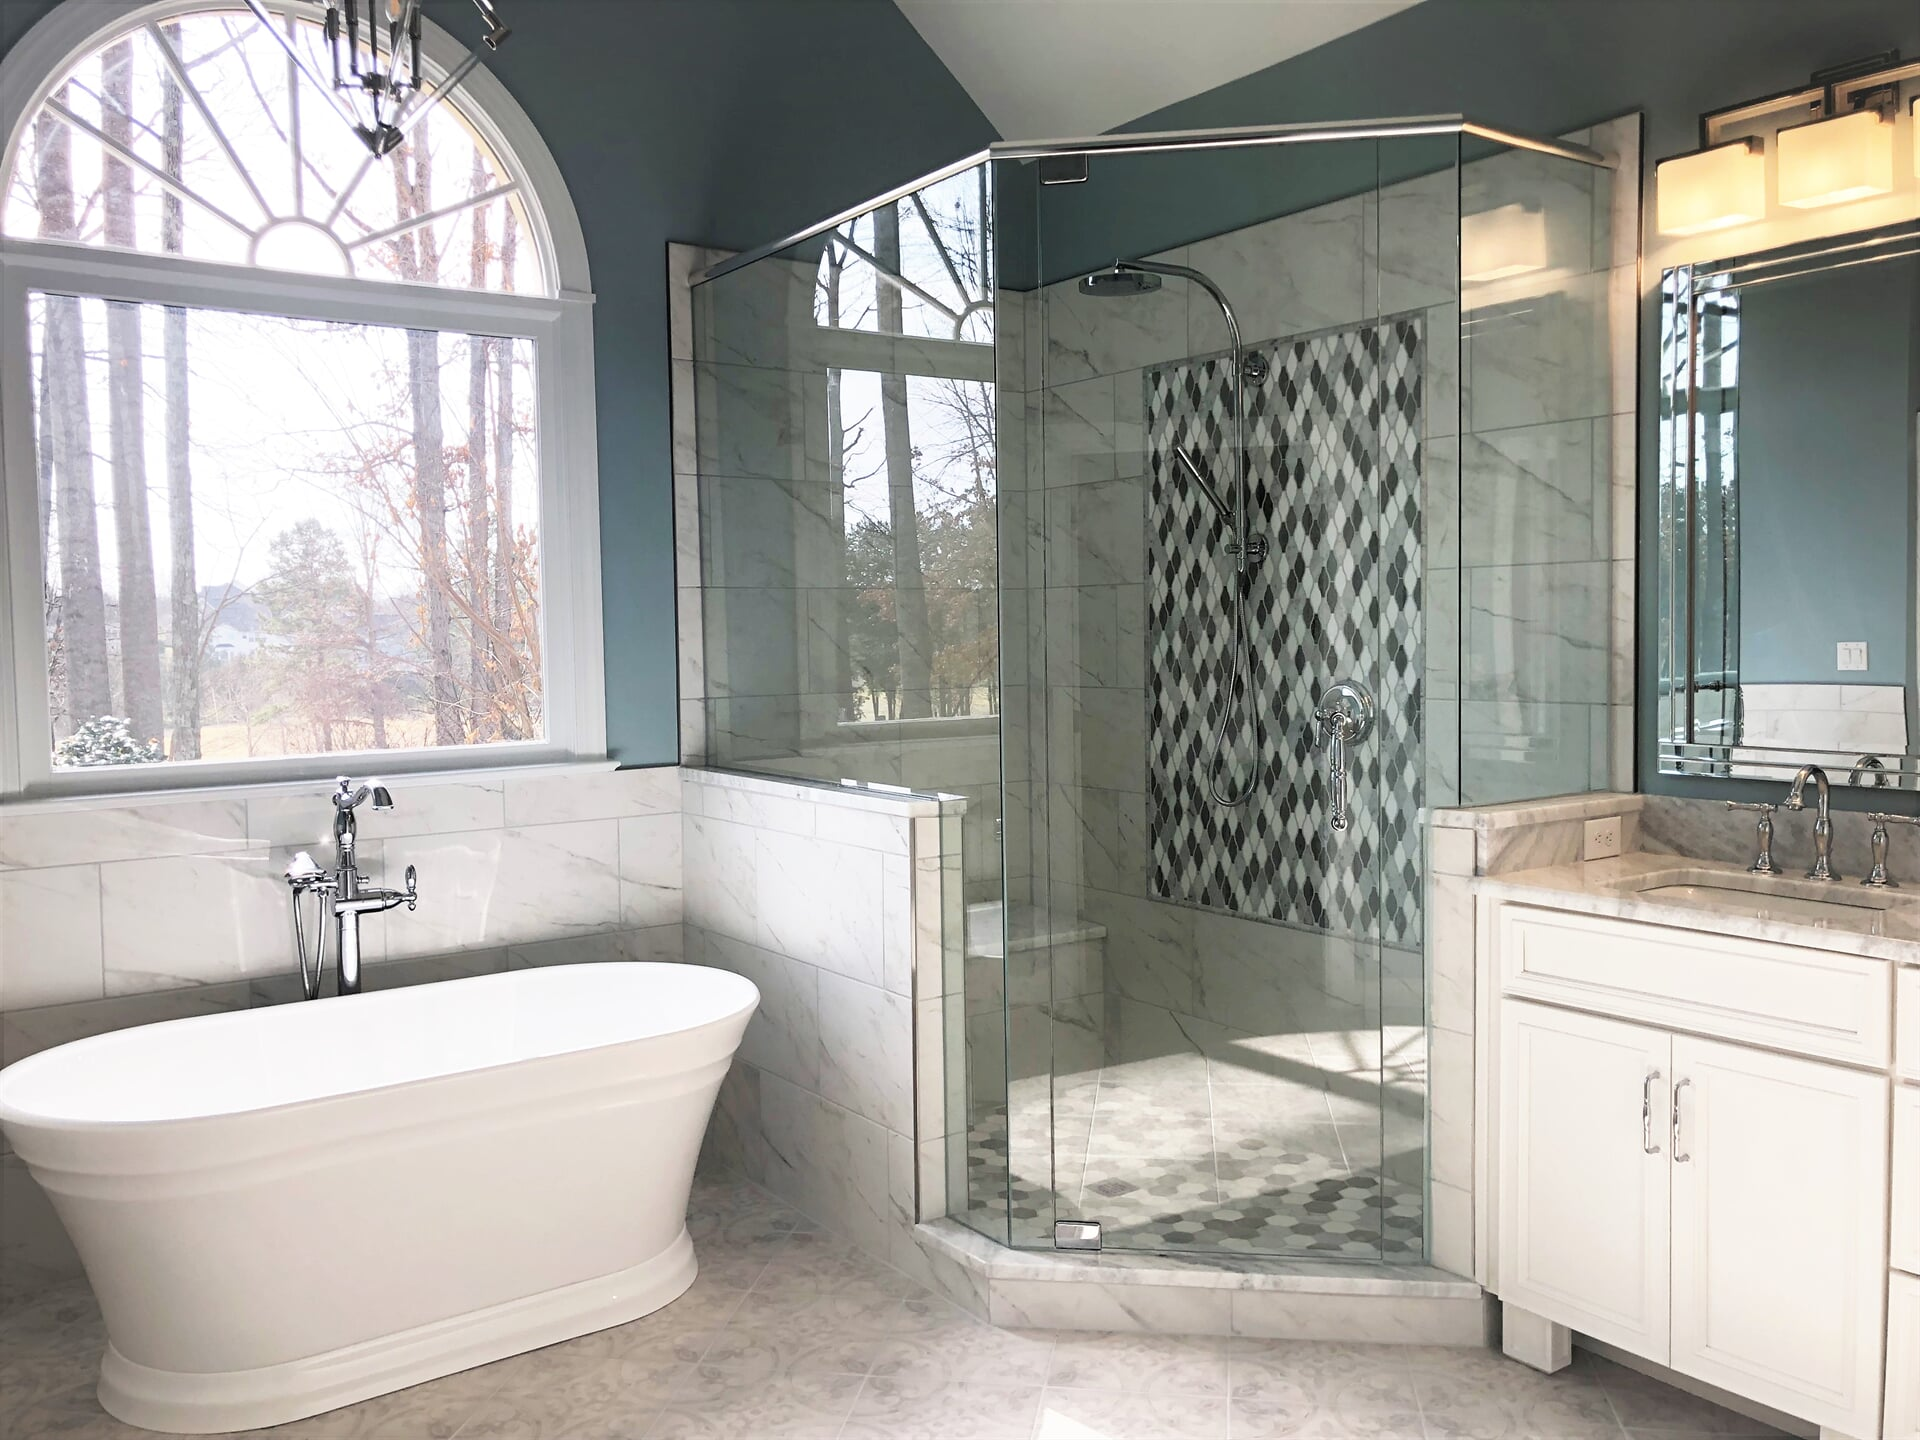 Custom bath and shower installation in Cornelius, NC from LITTLE Wood Flooring & Cabinetry